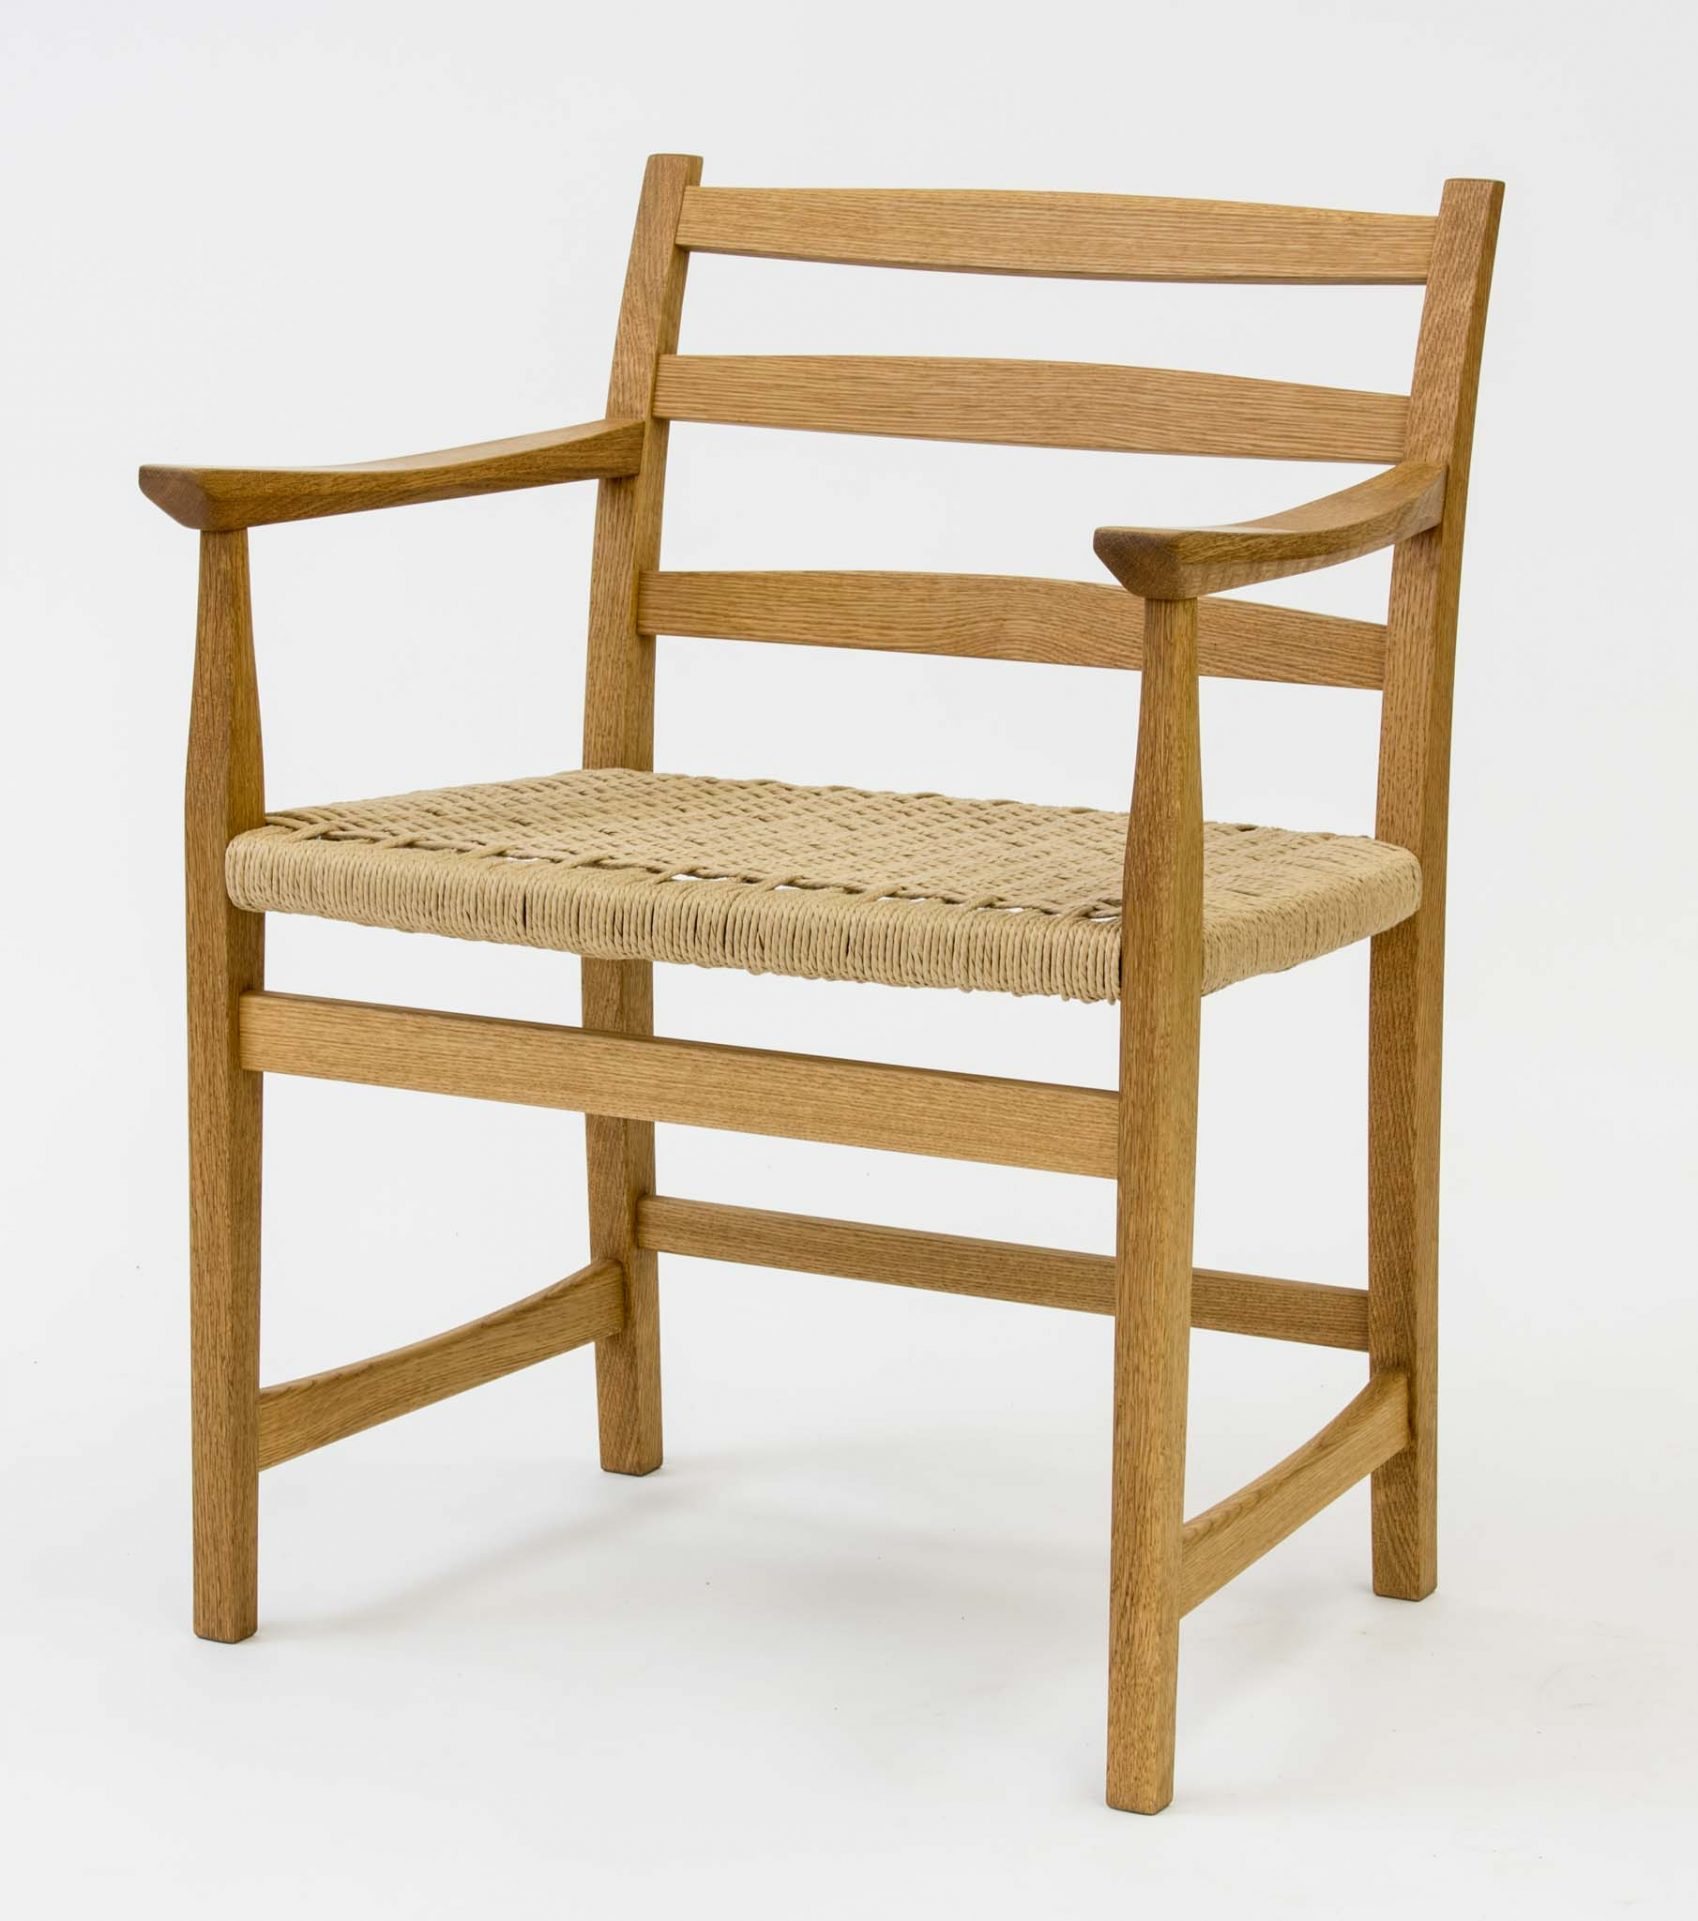 Hinkley's britta chair